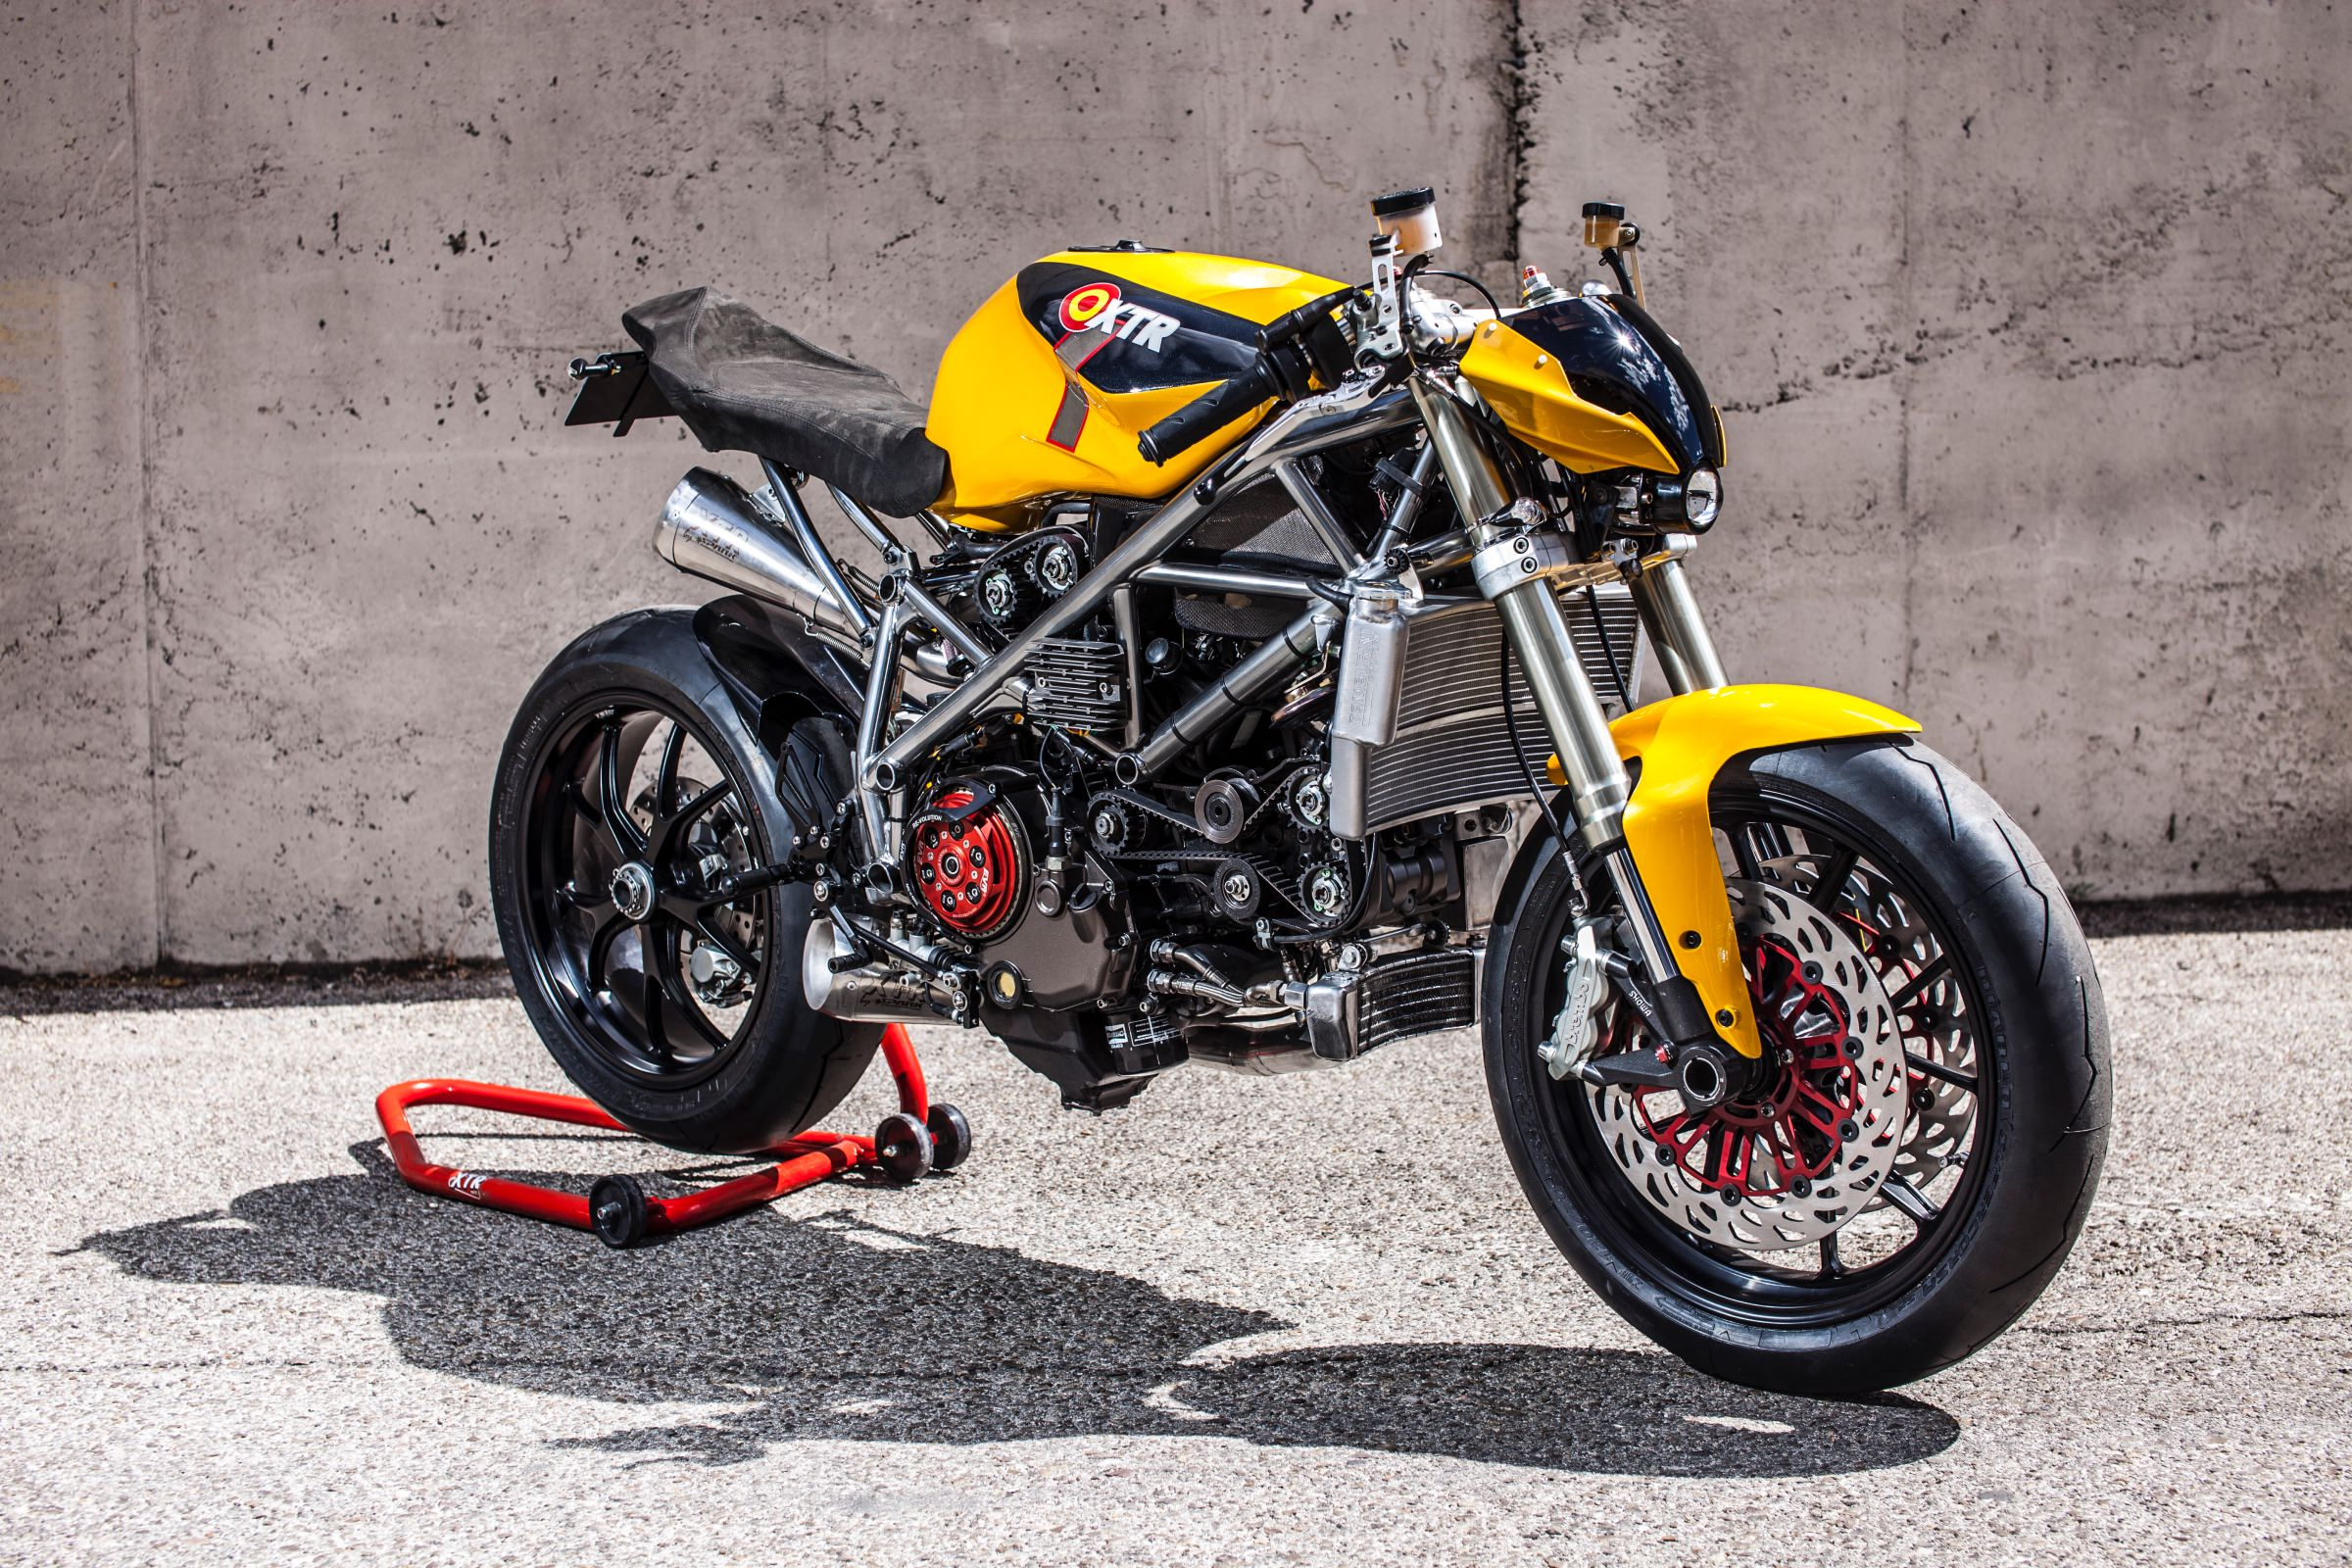 Ducati 848 Custom Street Fighter by XTR Pepo - Doud Maquina